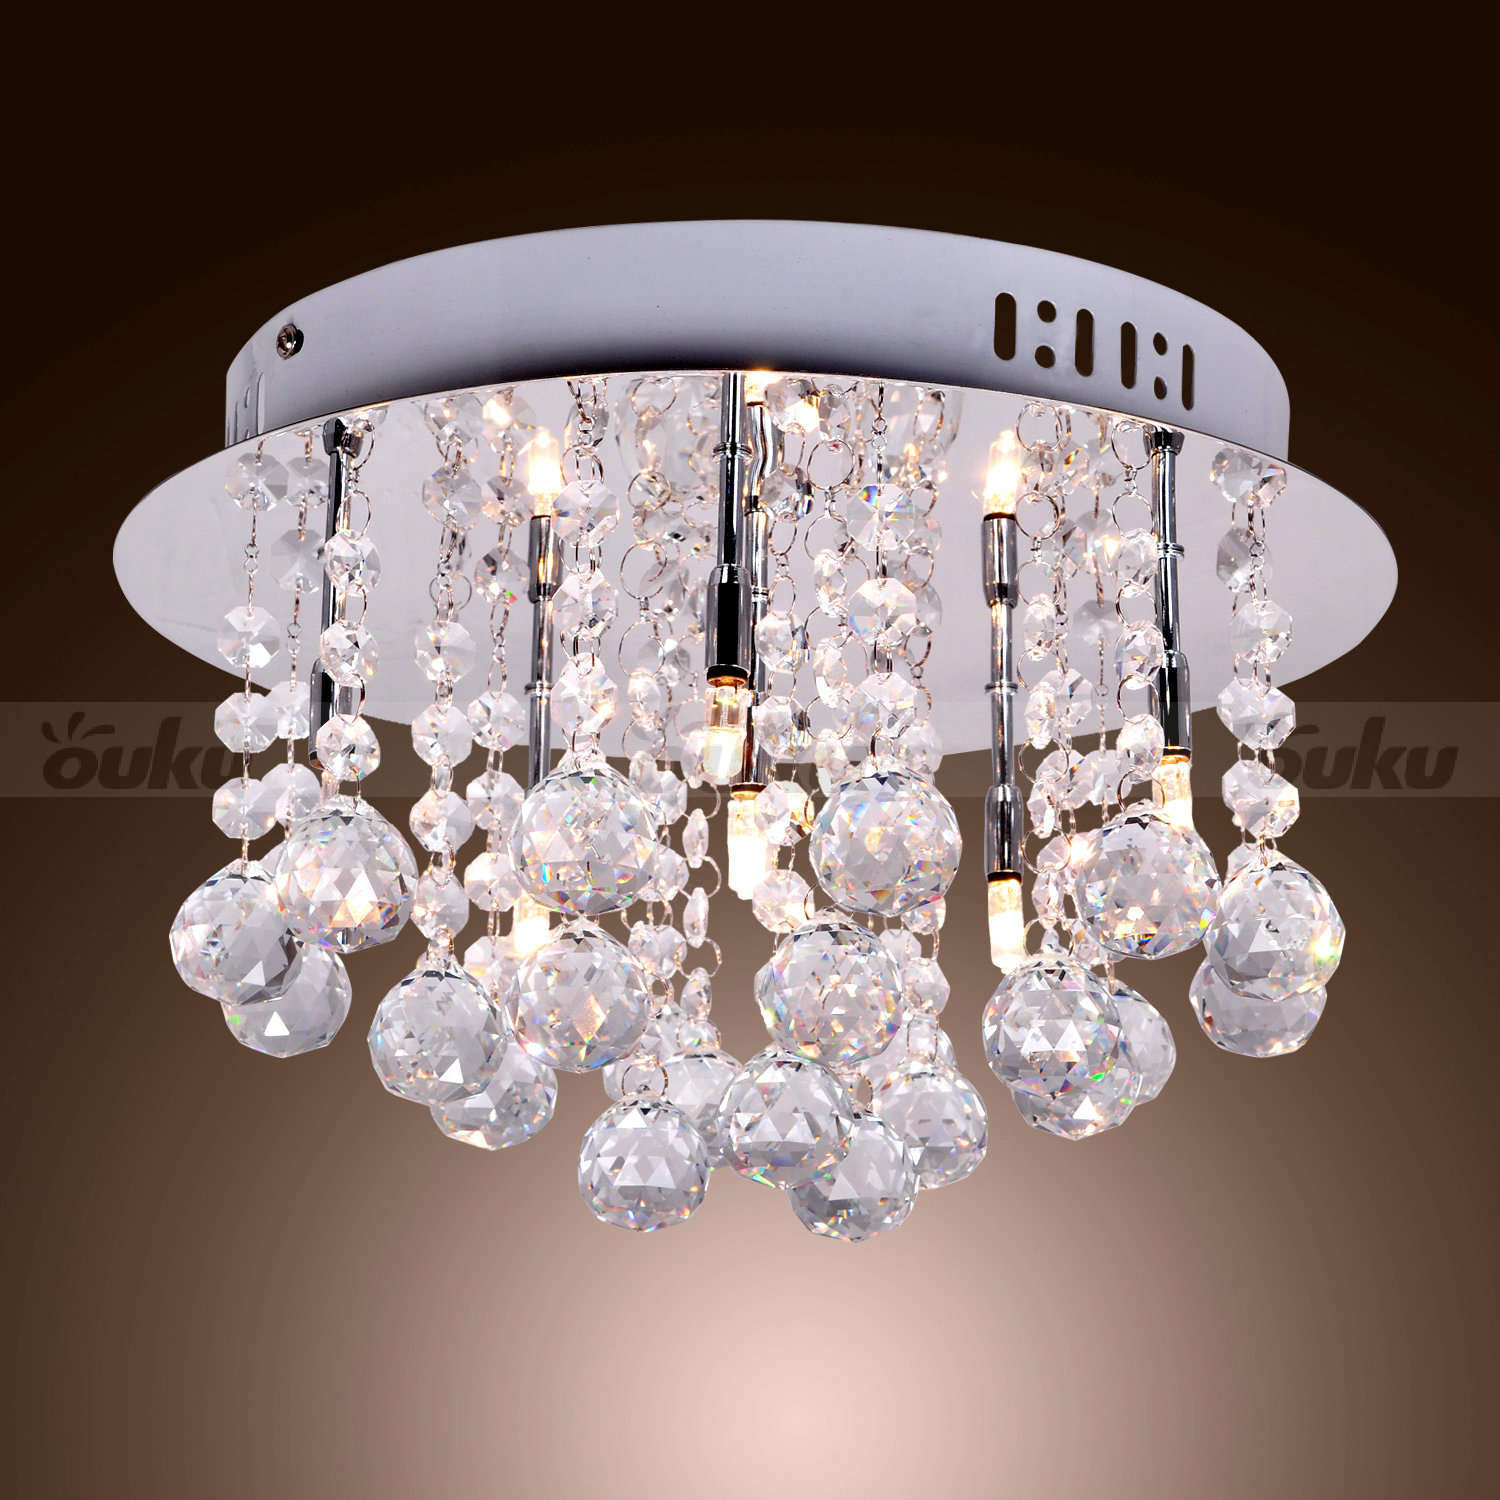 Led Crystal Glass Chandelier Round Ceiling Light Pendant Lamp Hanging Fixture